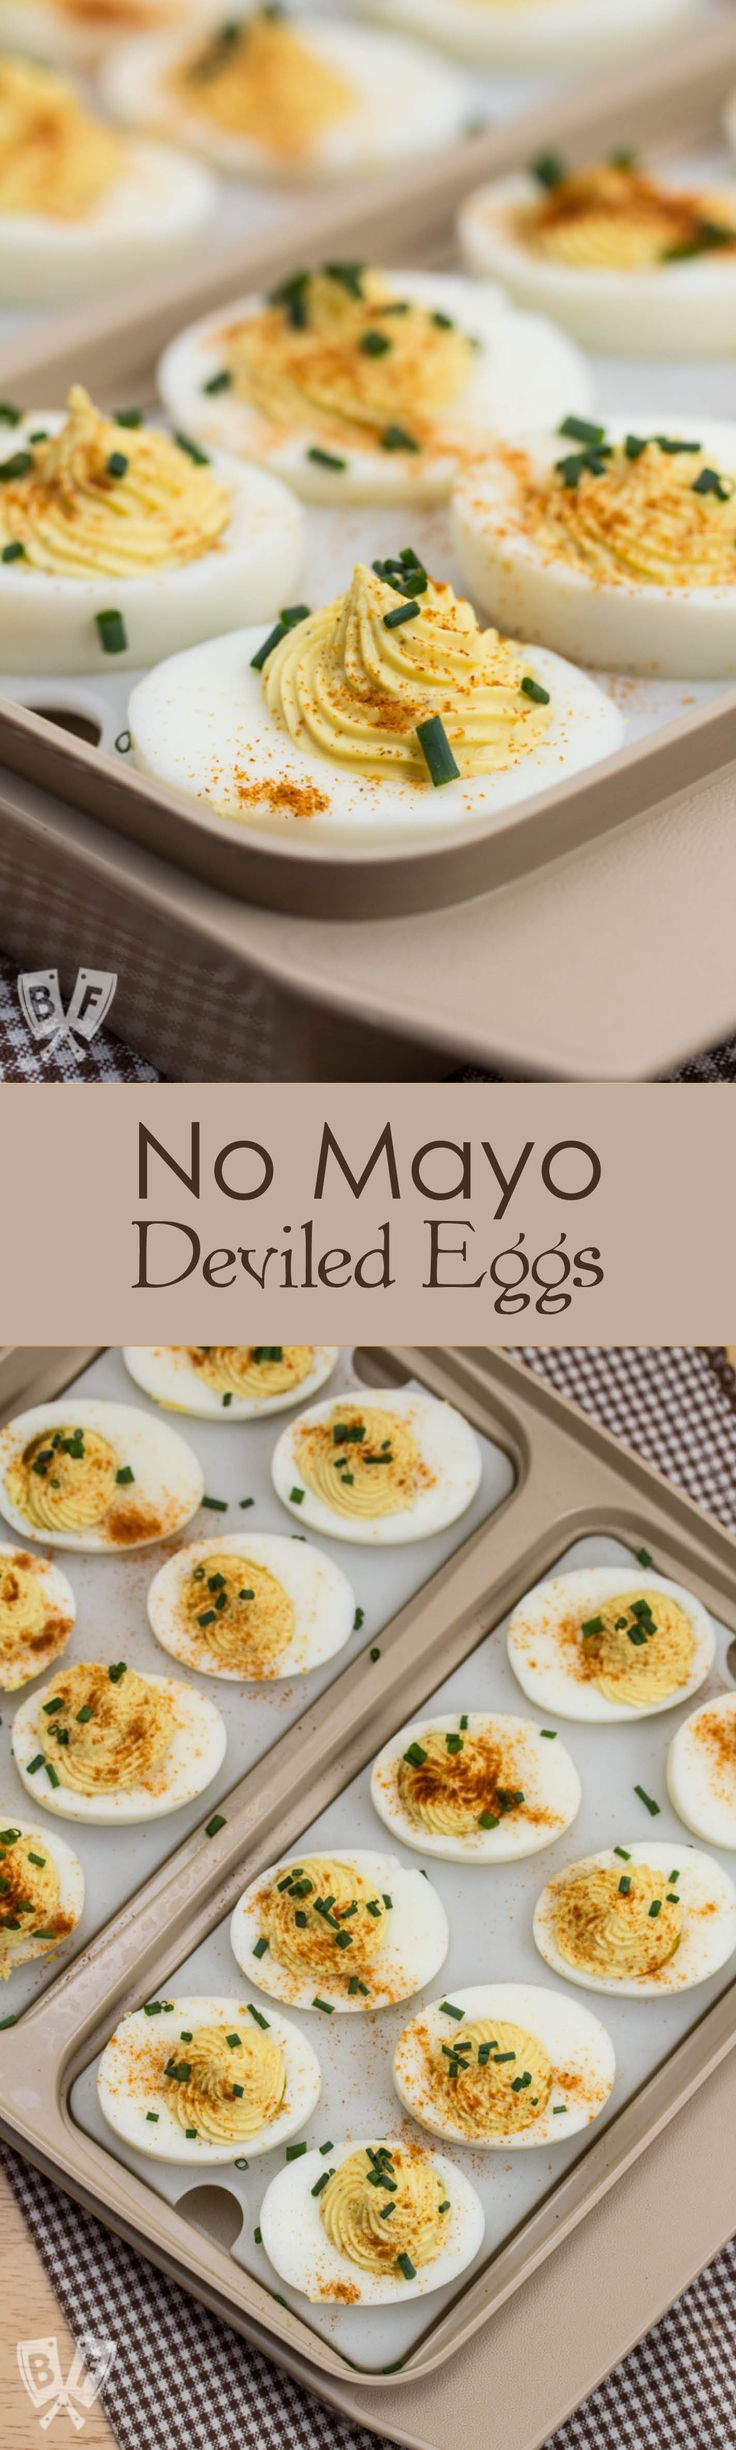 No Mayo Deviled Eggs: Skip the mayo in this appetizer favorite - guaranteed to be a hit at any party!